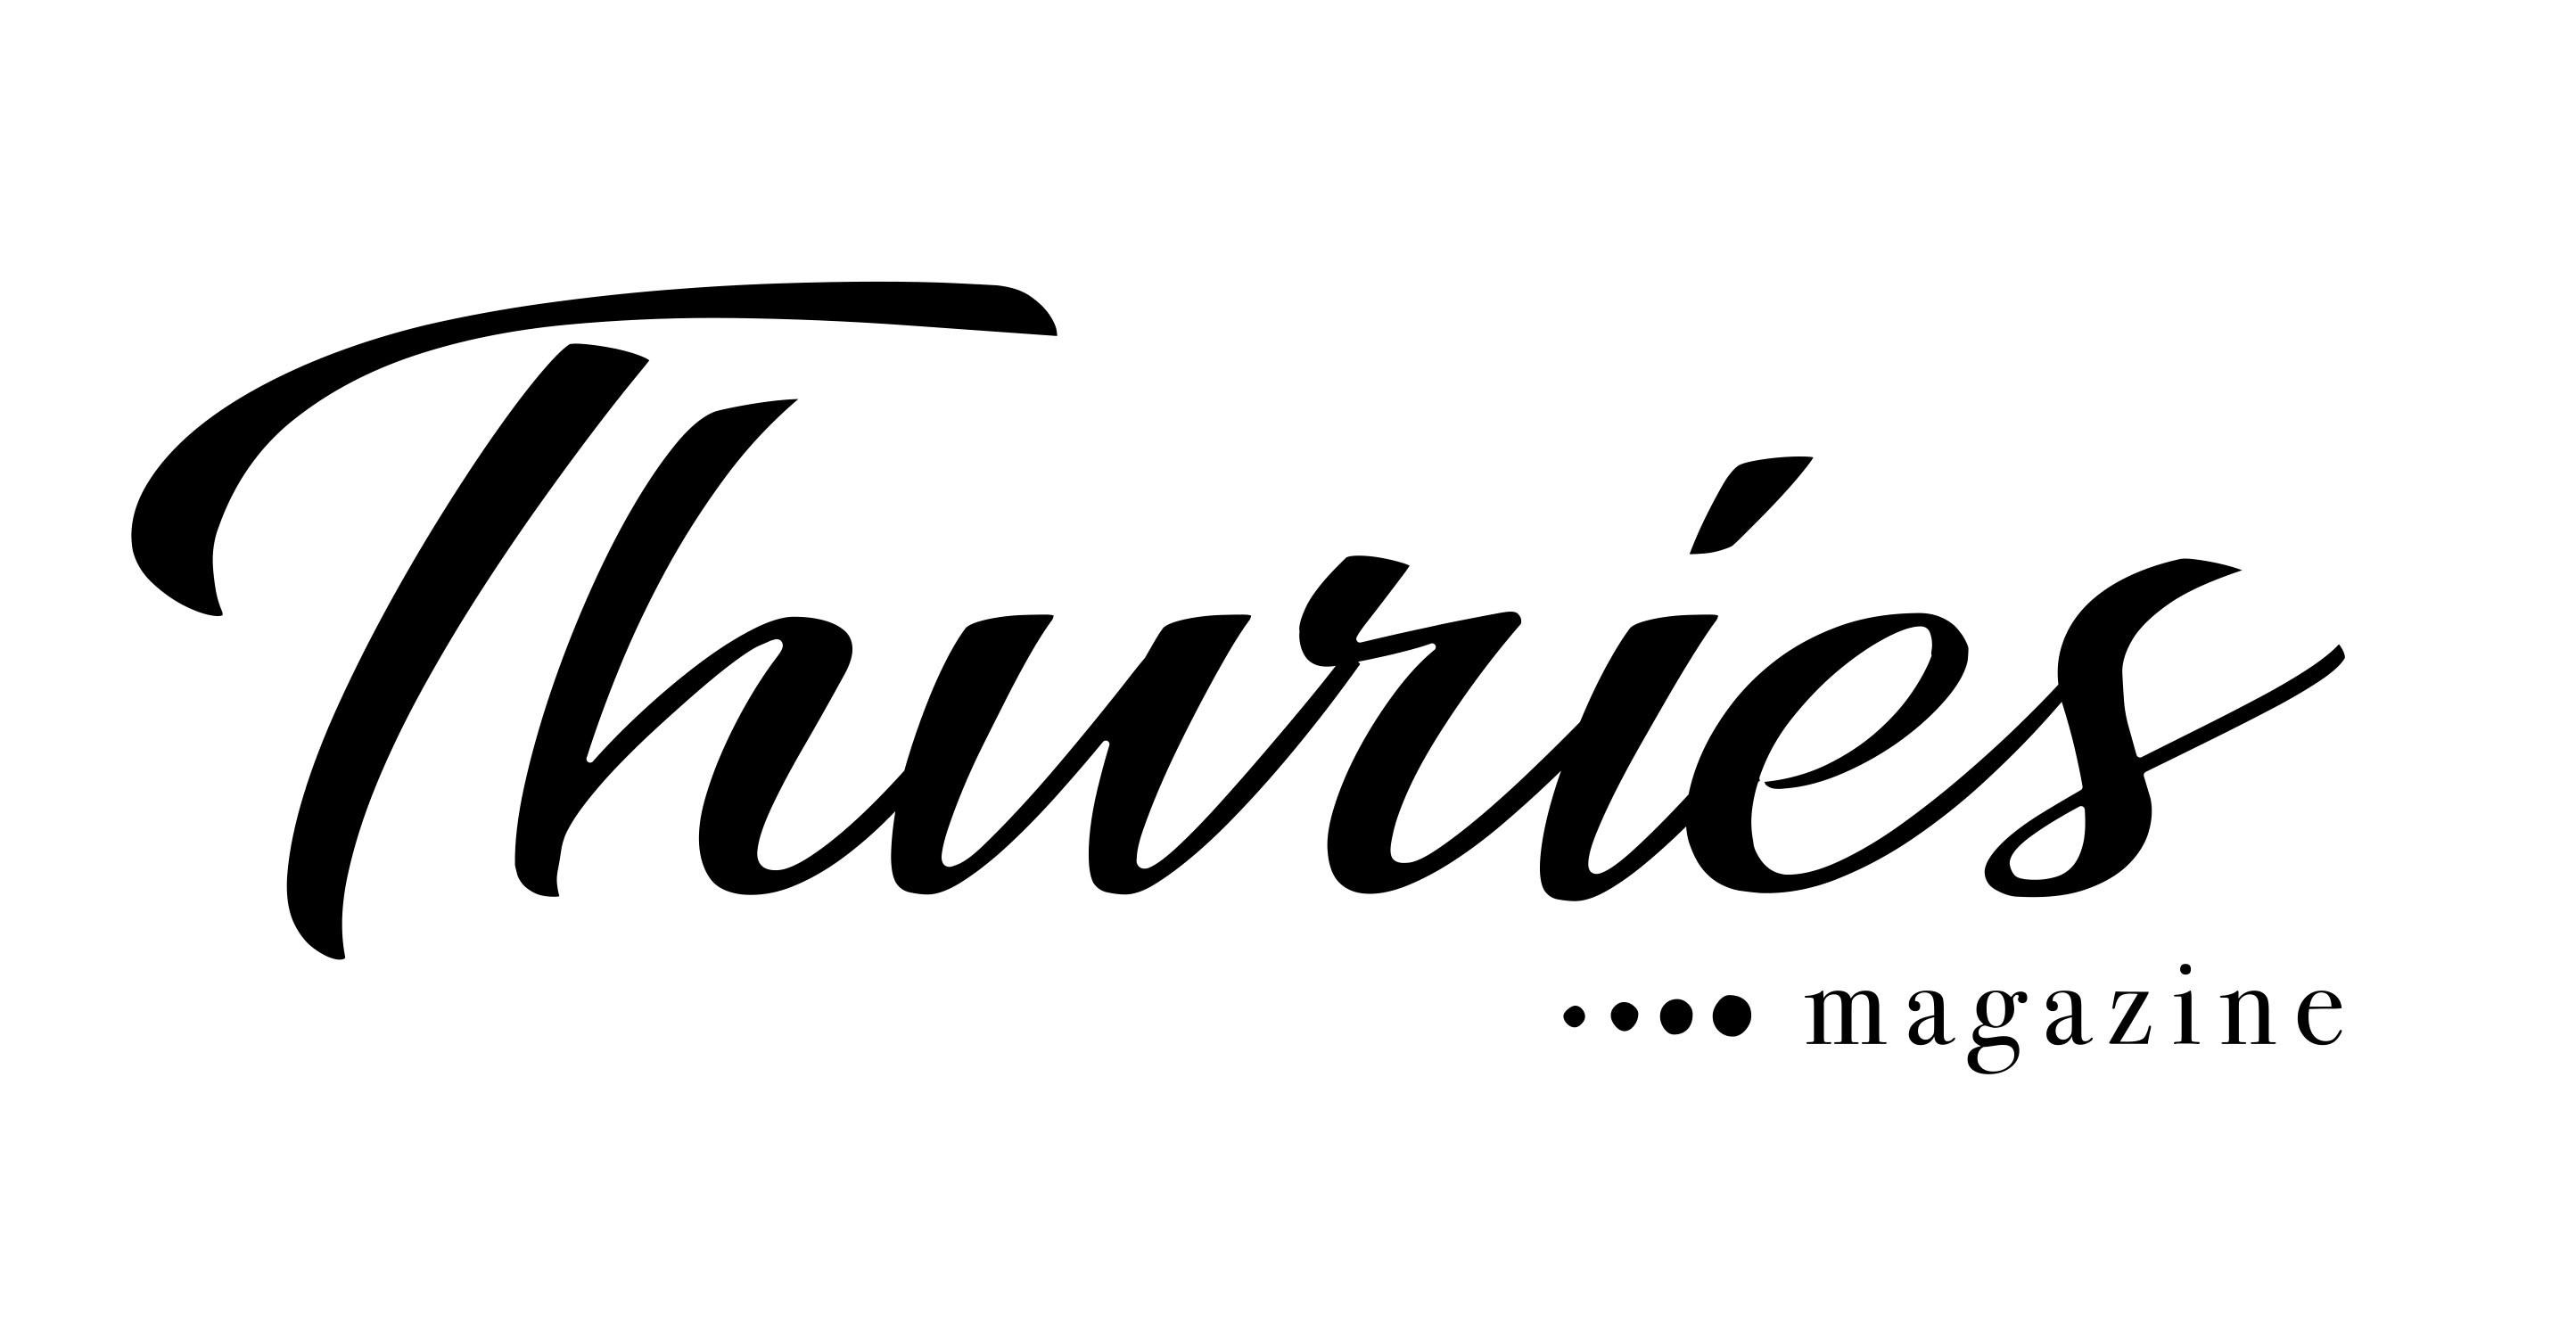 Thuries logo vectorisé.jpg